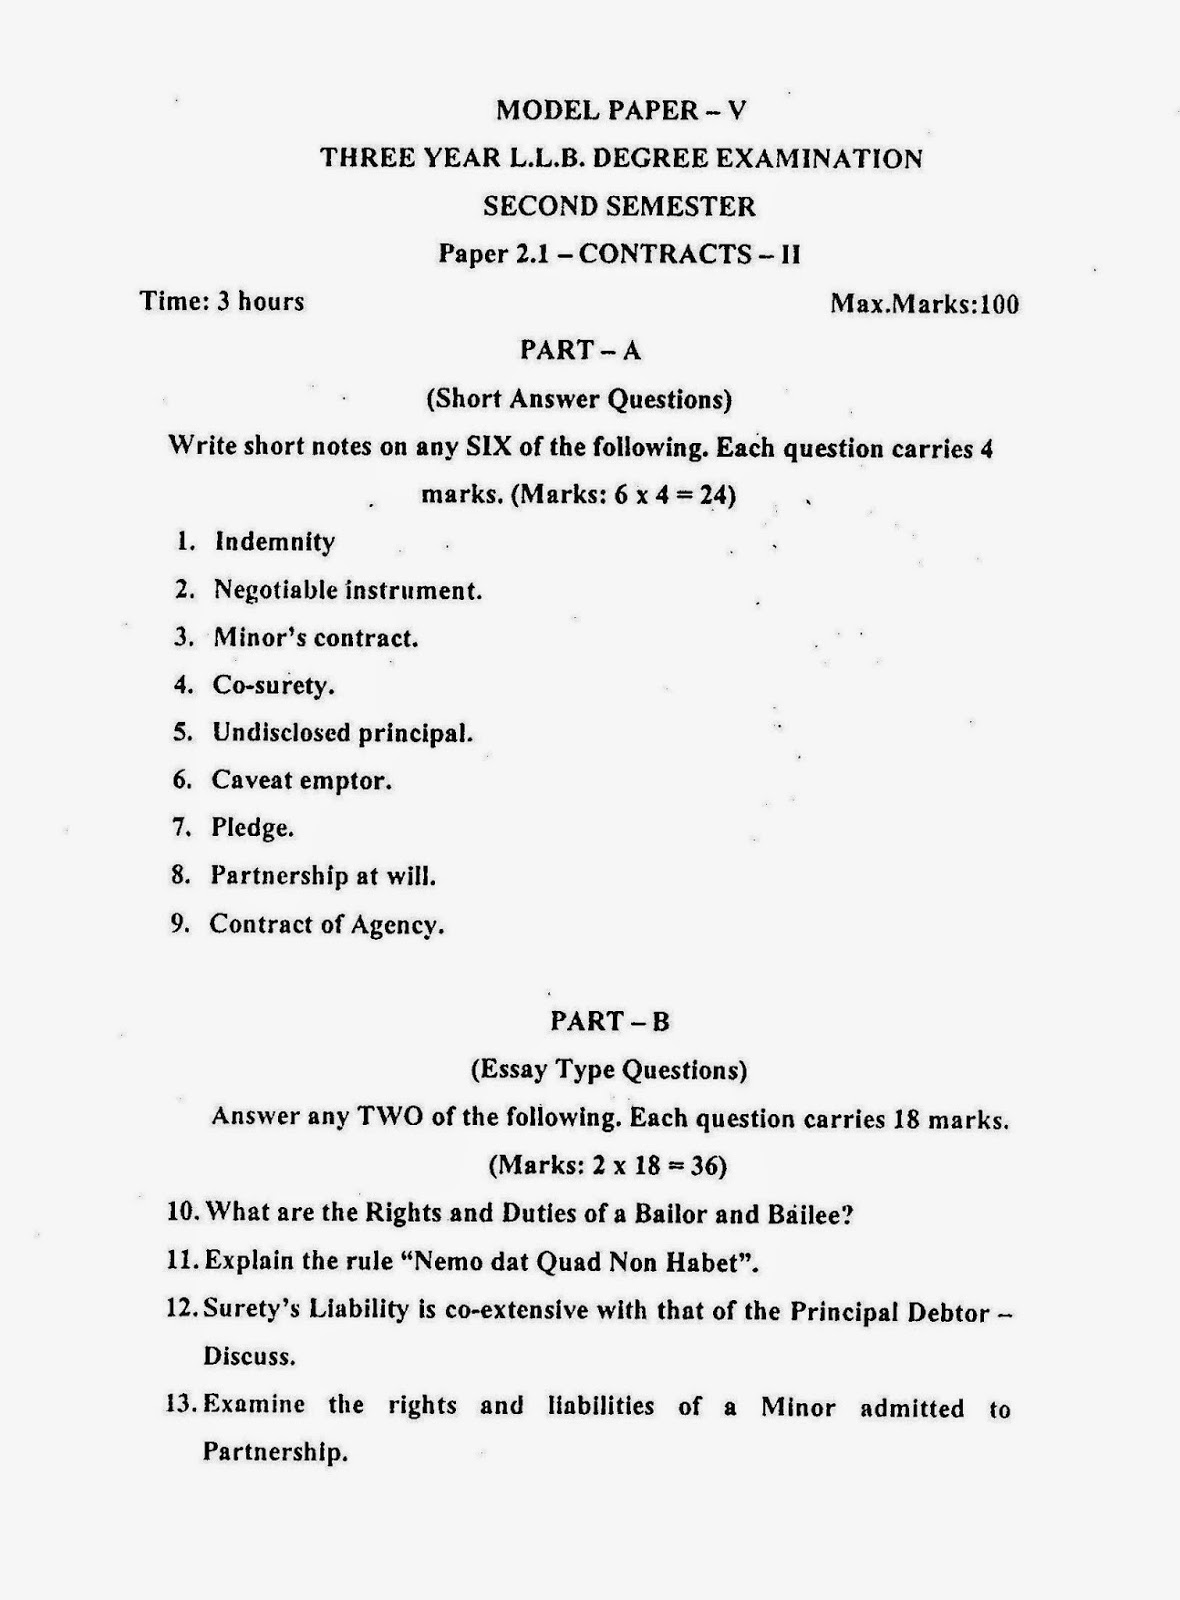 Cif and fob contracts essays